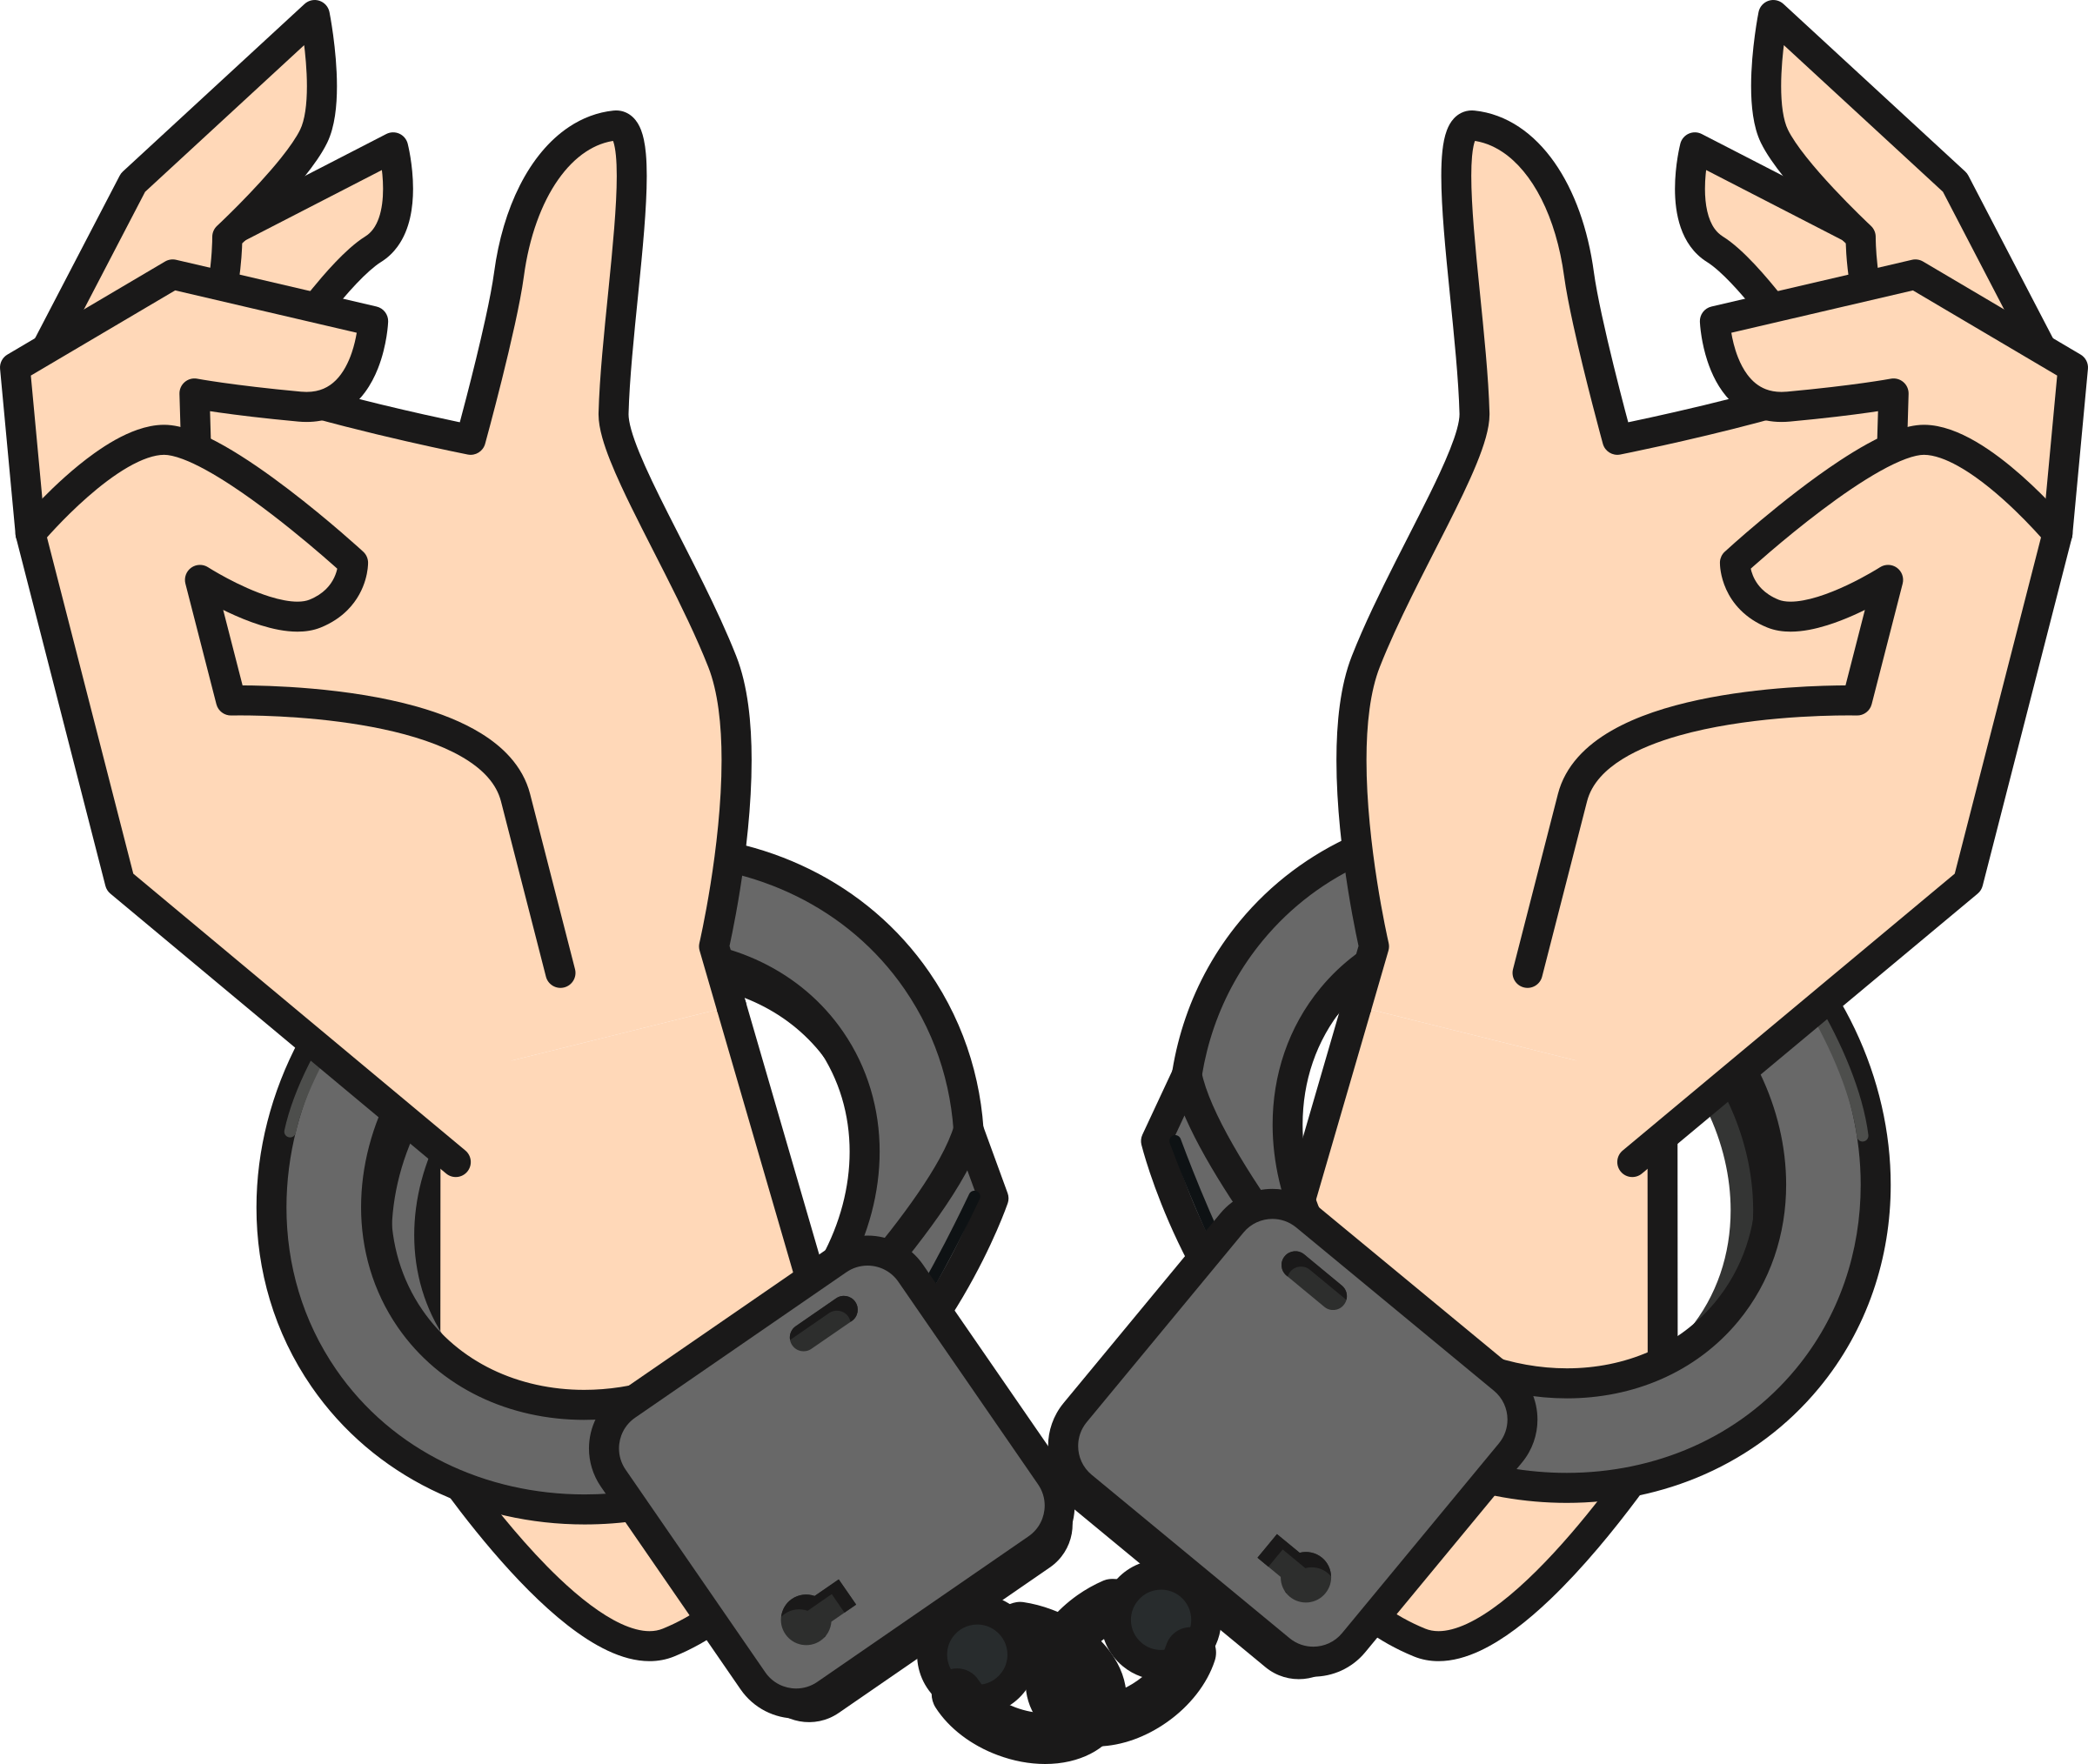 svg stock Handcuffs clipart police equipment. Big image png